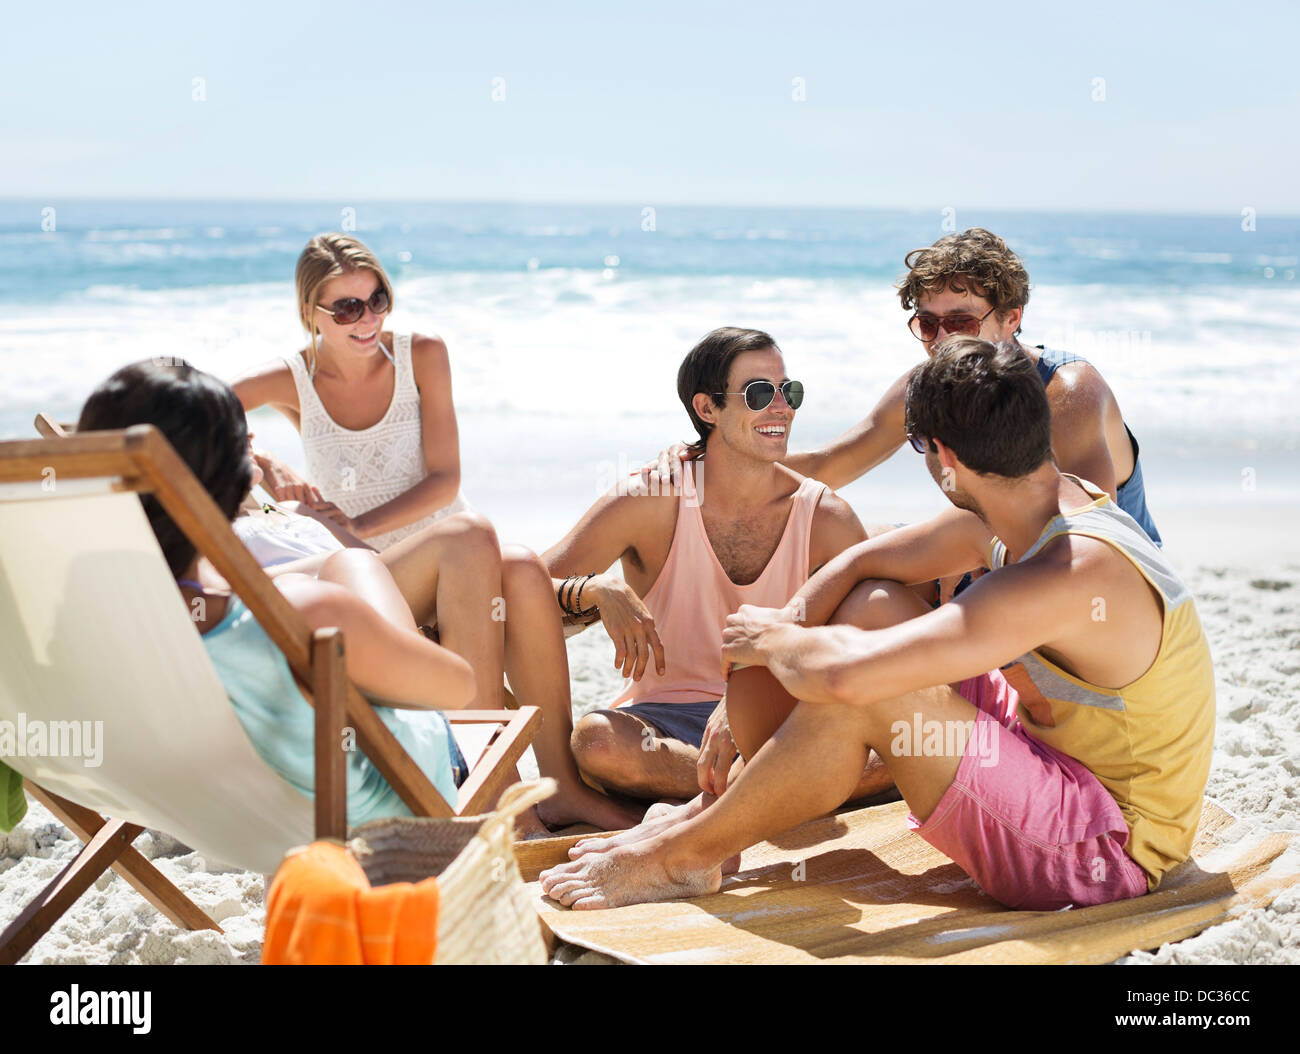 Friends hanging out on beach - Stock Image